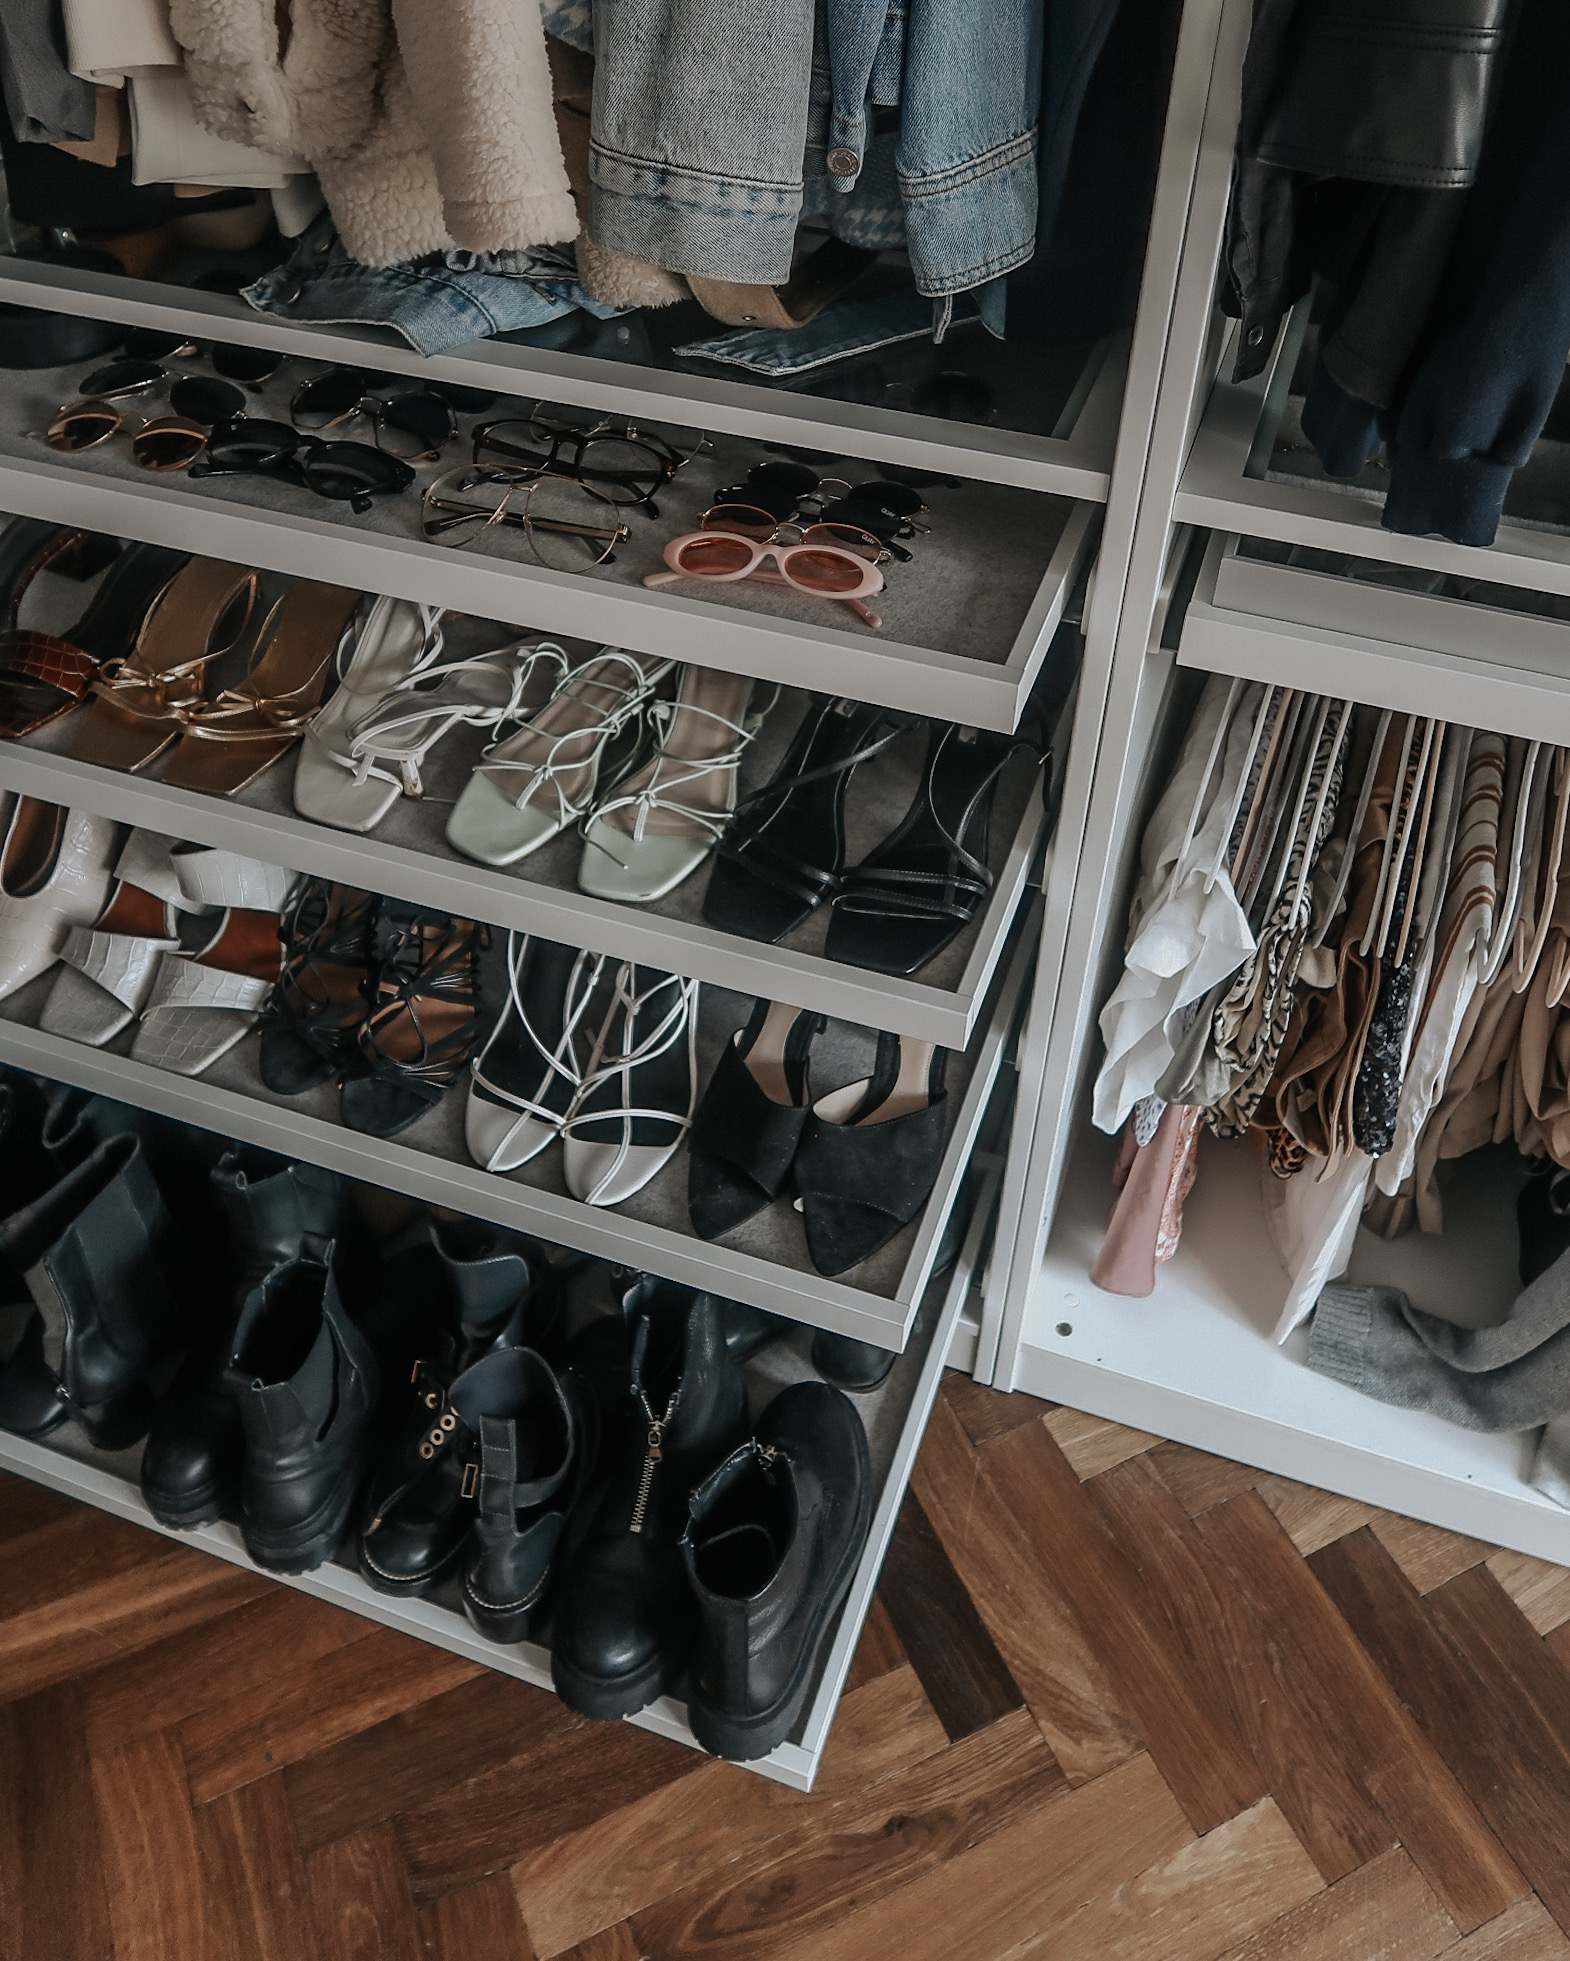 Ikea Pax Wardrobe - Shoe Storage